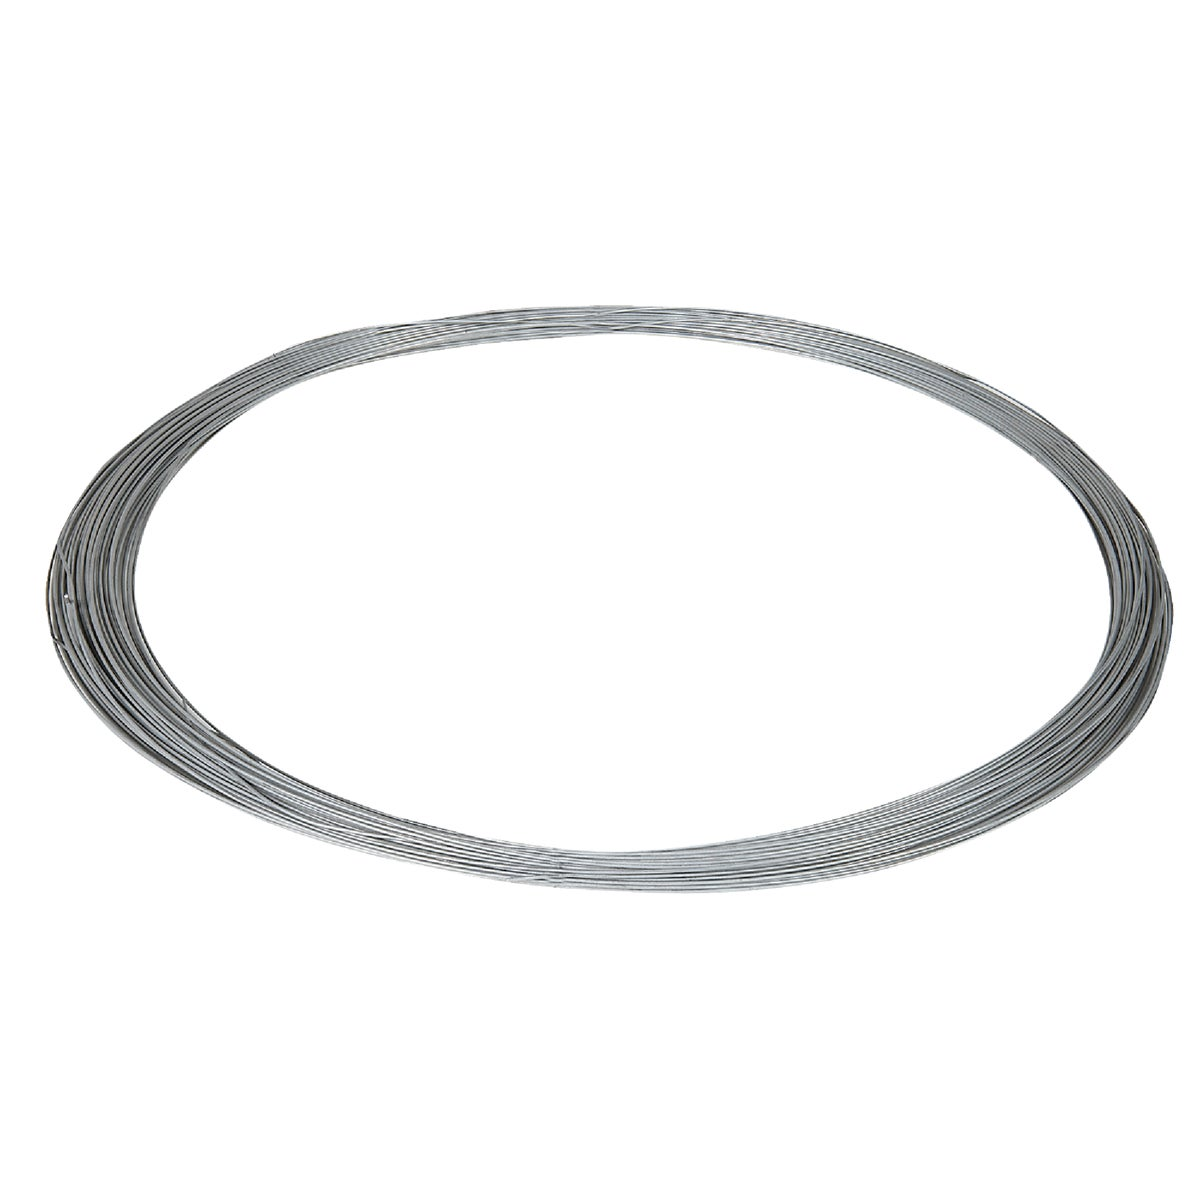 12GA 10# GLV SMOOTH WIRE - SWG1210 by Primesource